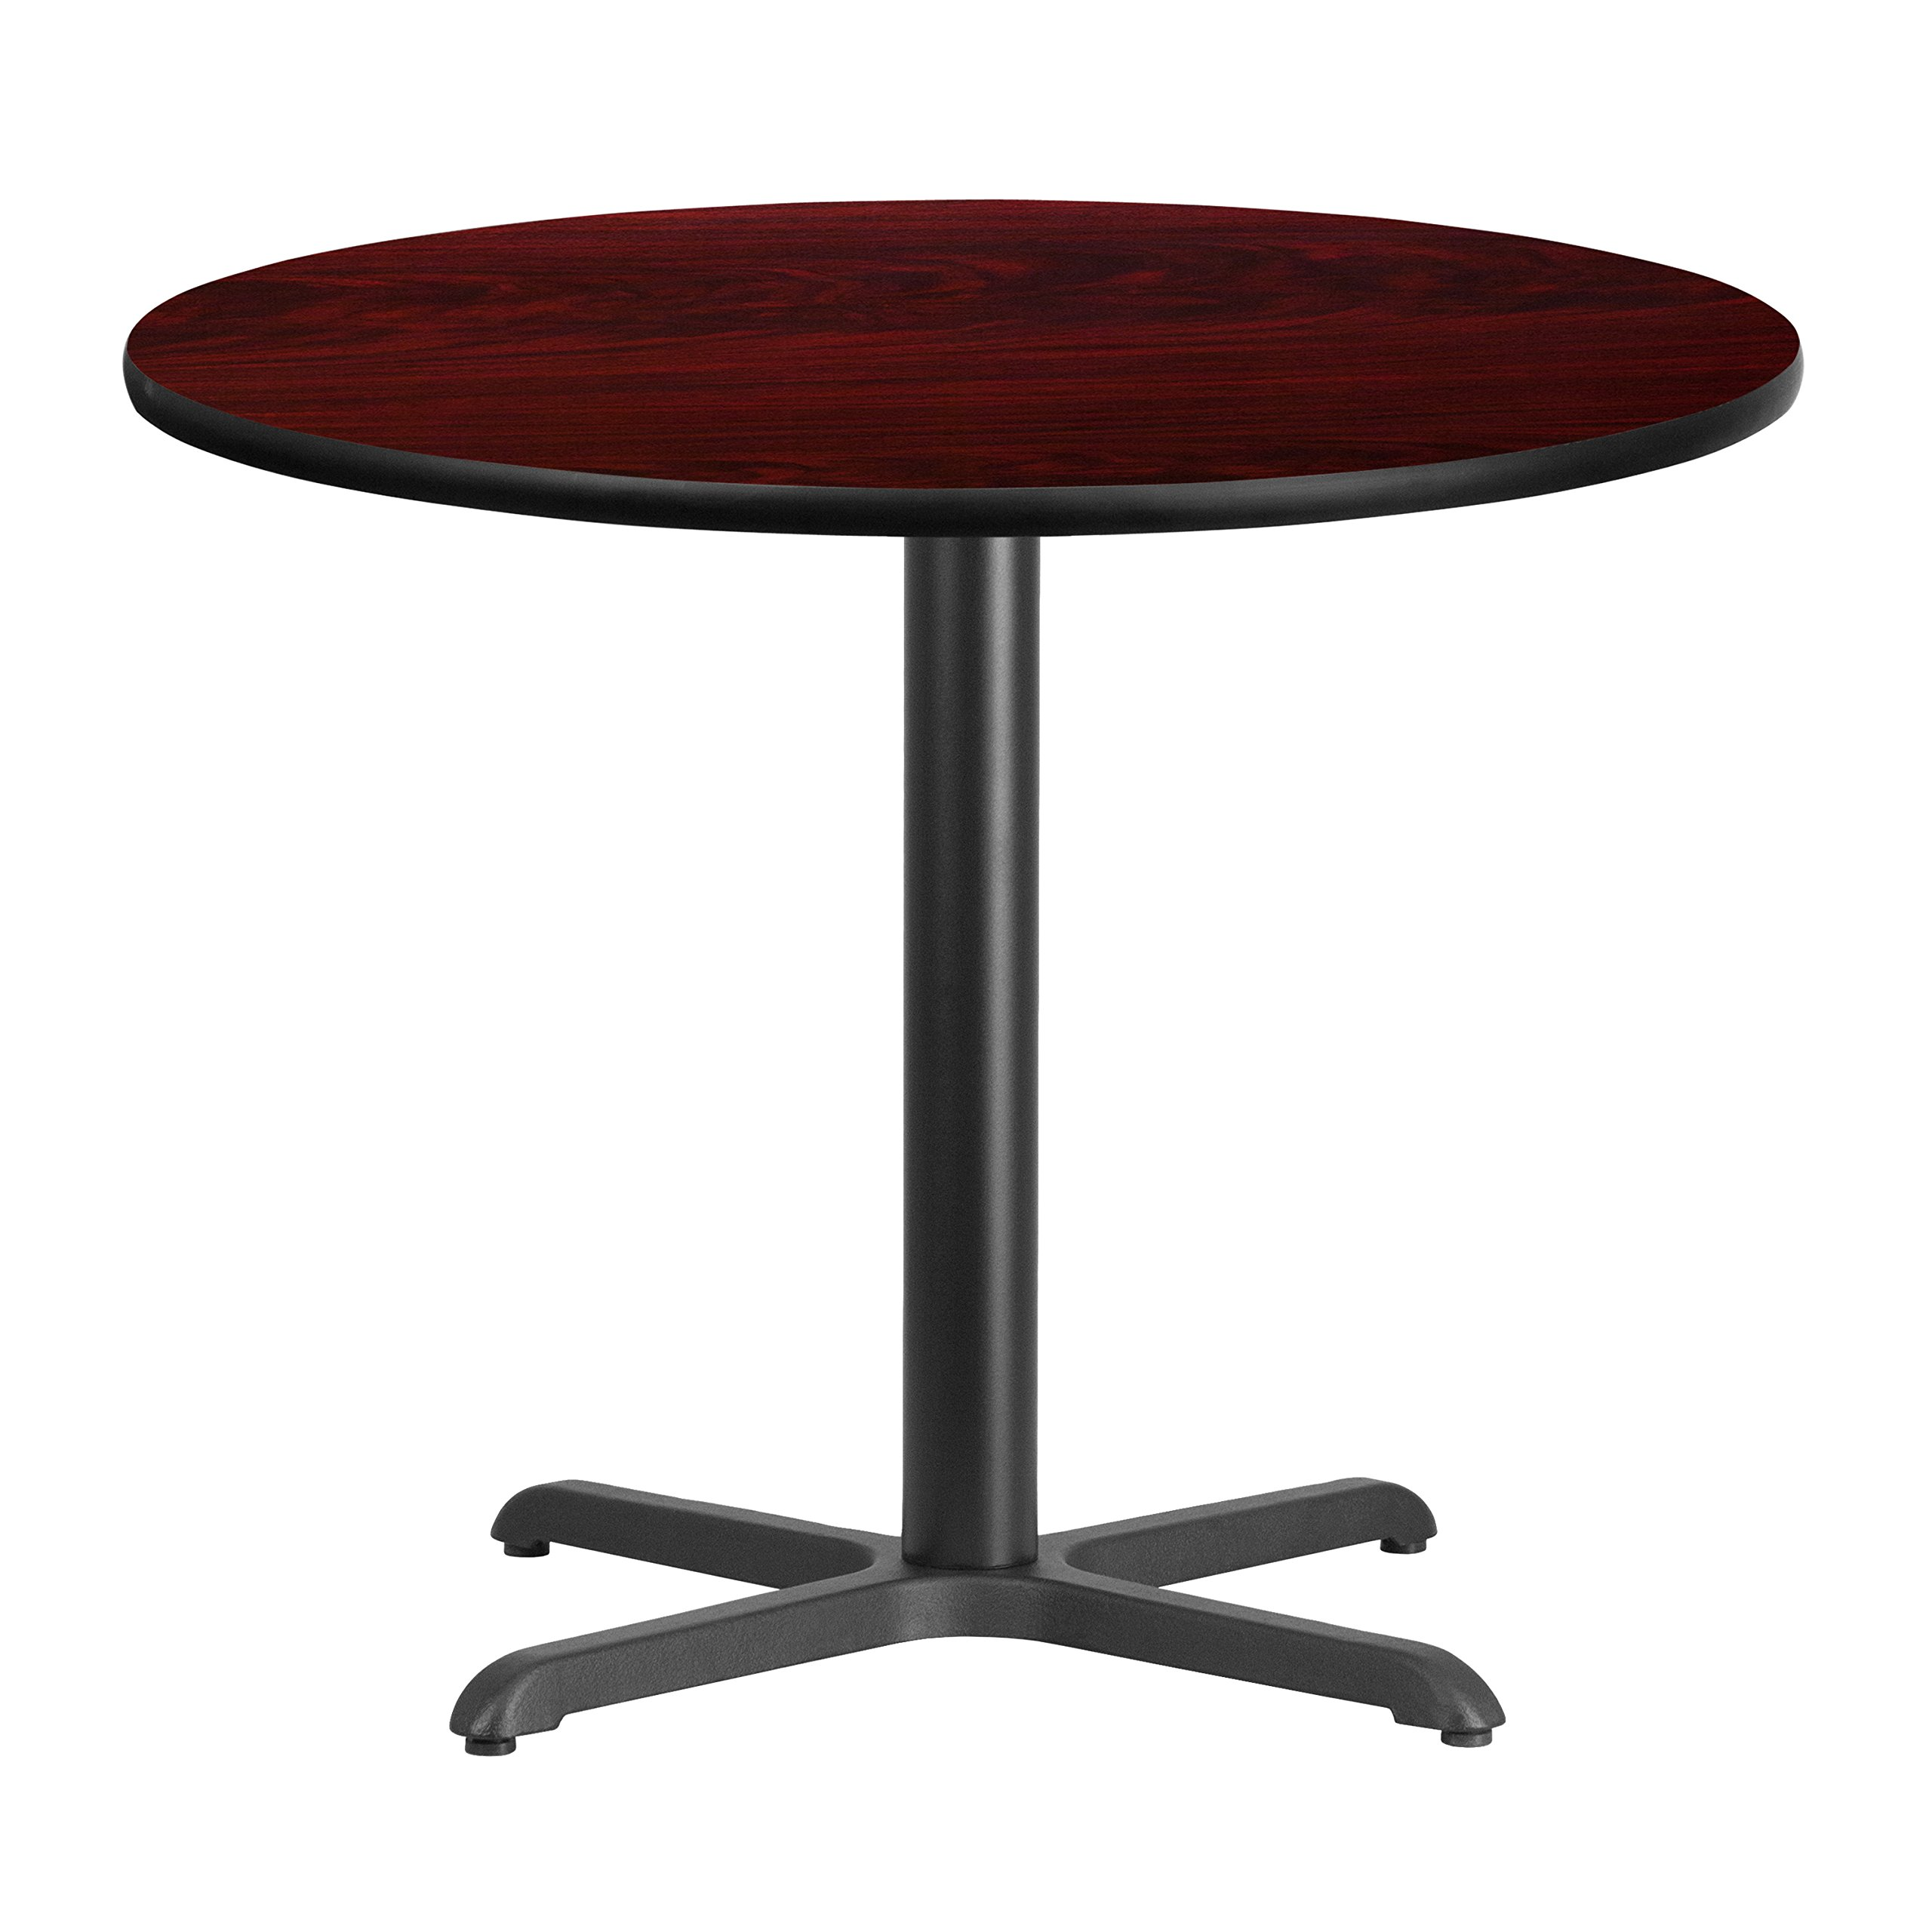 36'' Round Mahogany Laminate Table Top with 30'' x 30'' Table Height Base by Flash Furniture (Image #2)